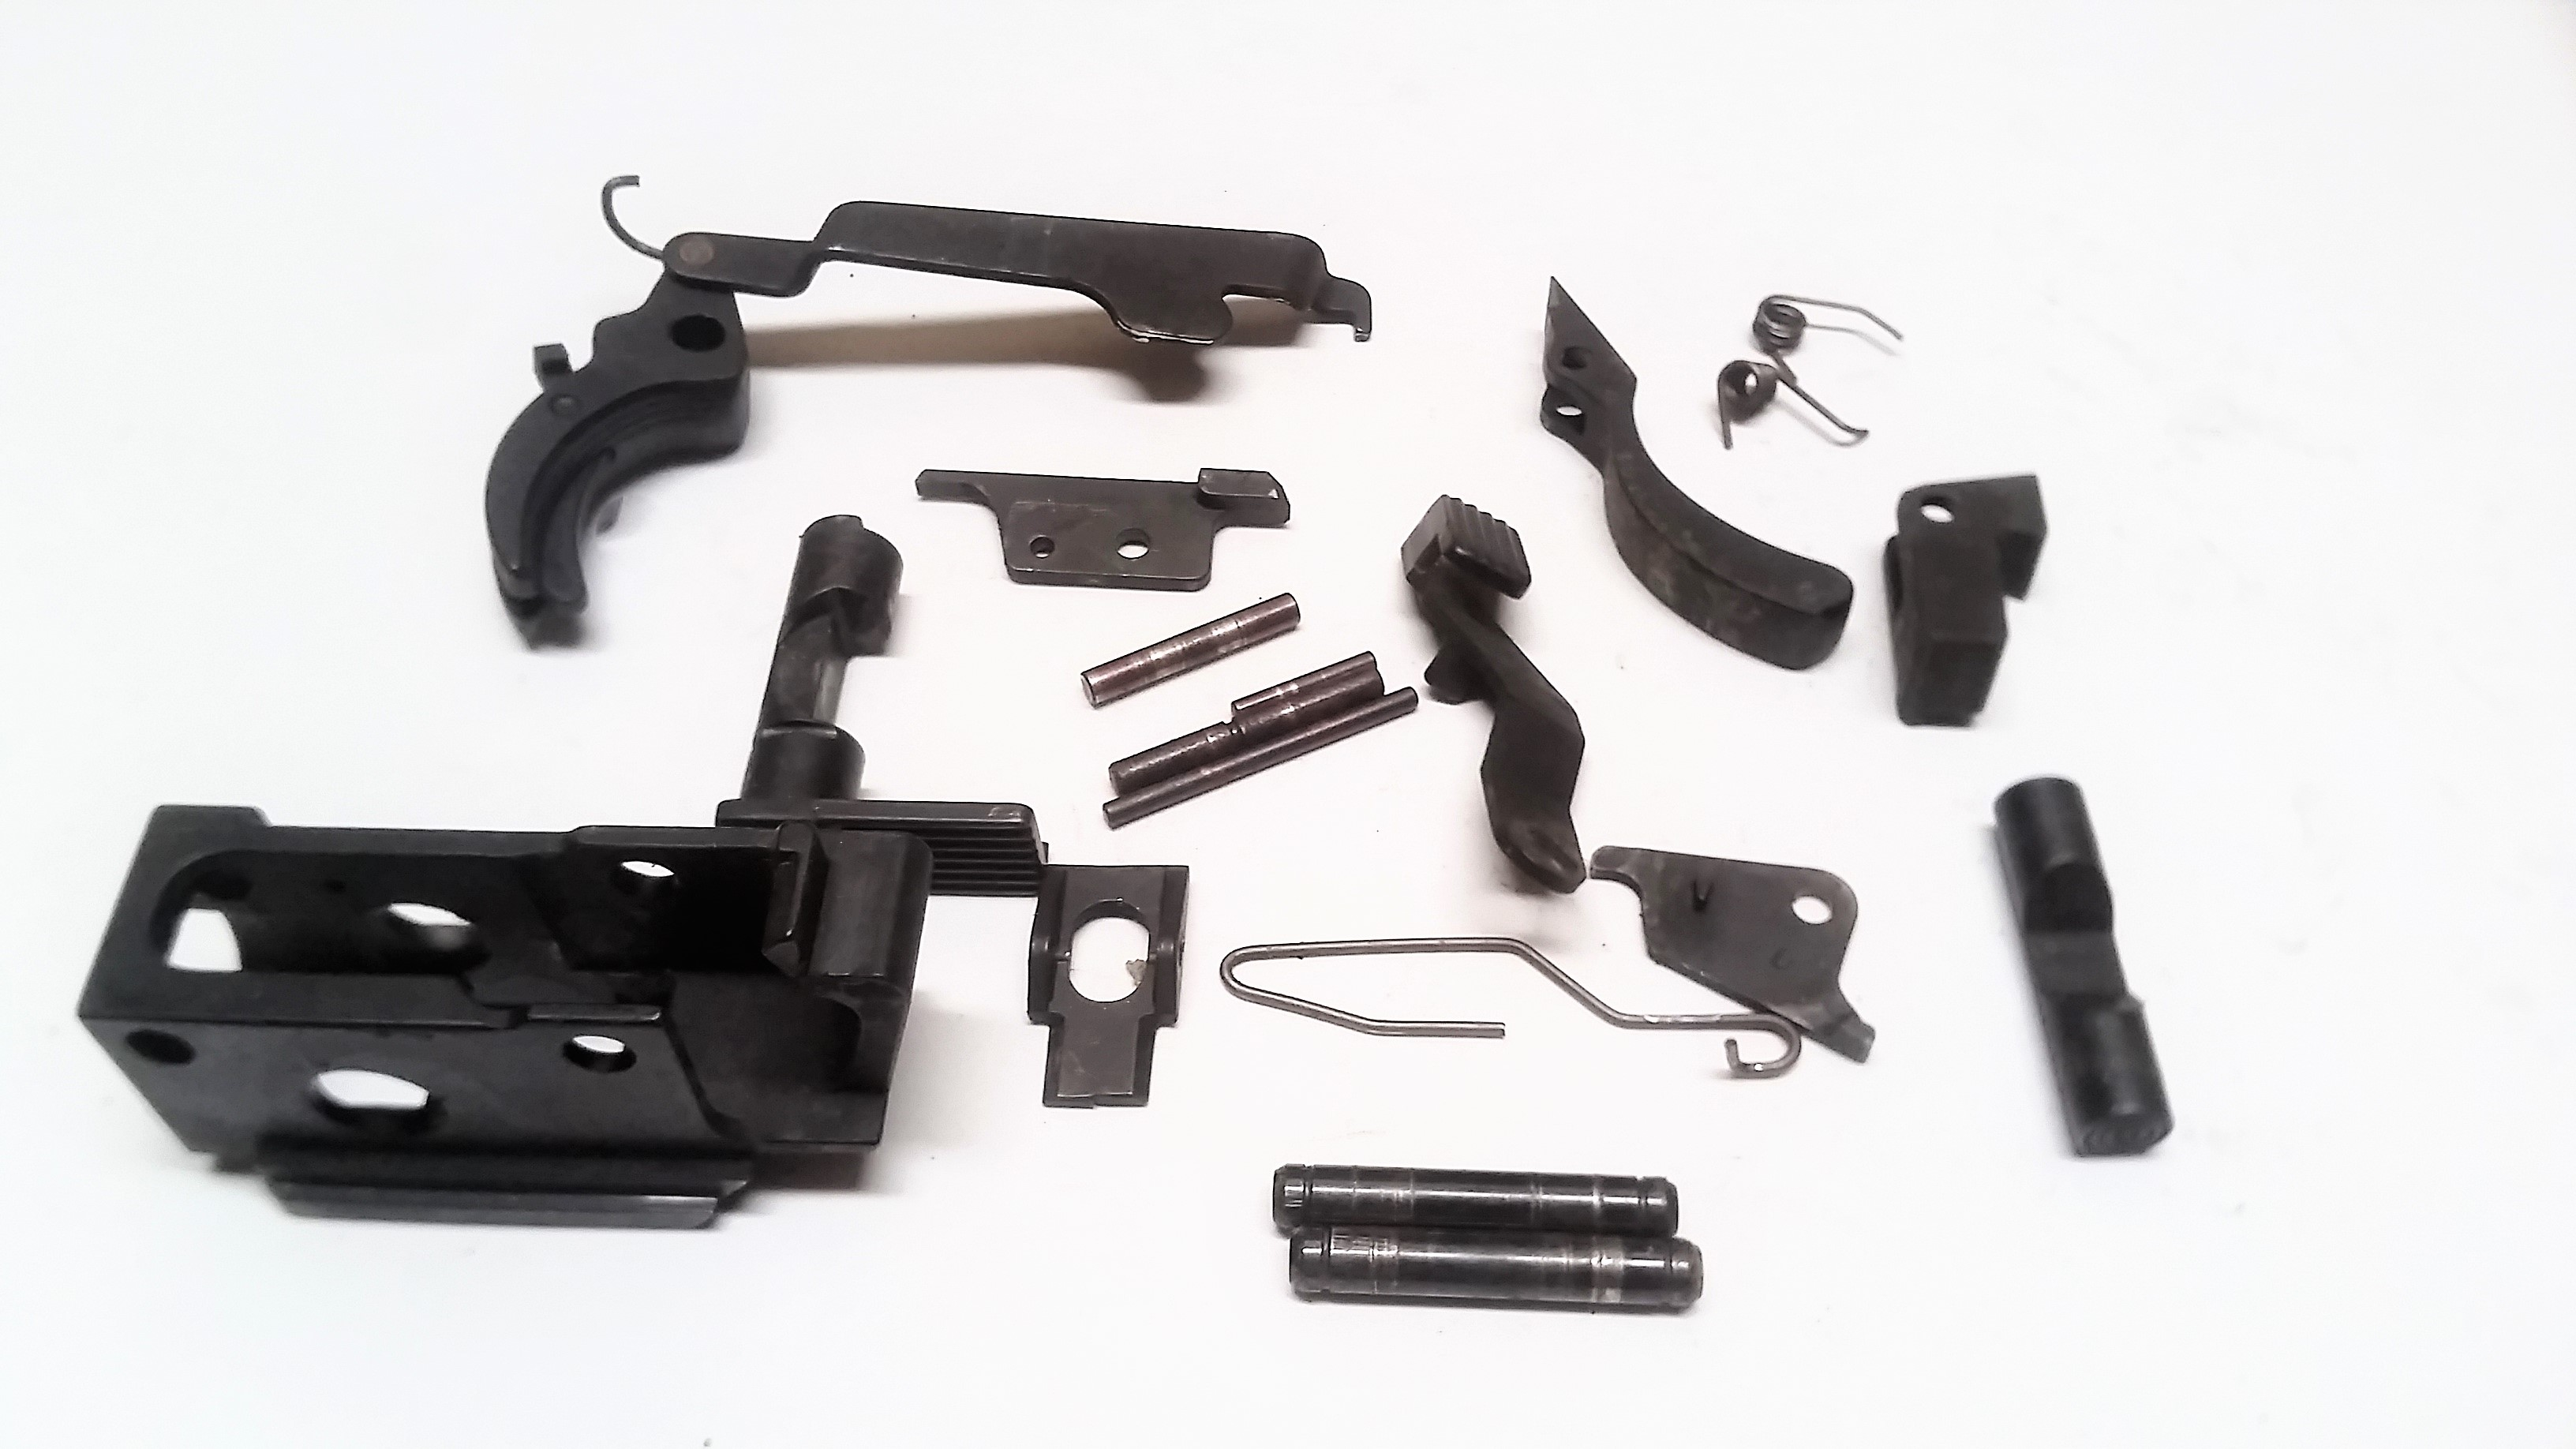 Used Springfield Armory XD-45 Small Parts Kit-From Demilled Pistol-Very  Good Condition-Available Online Now-No FFL Required